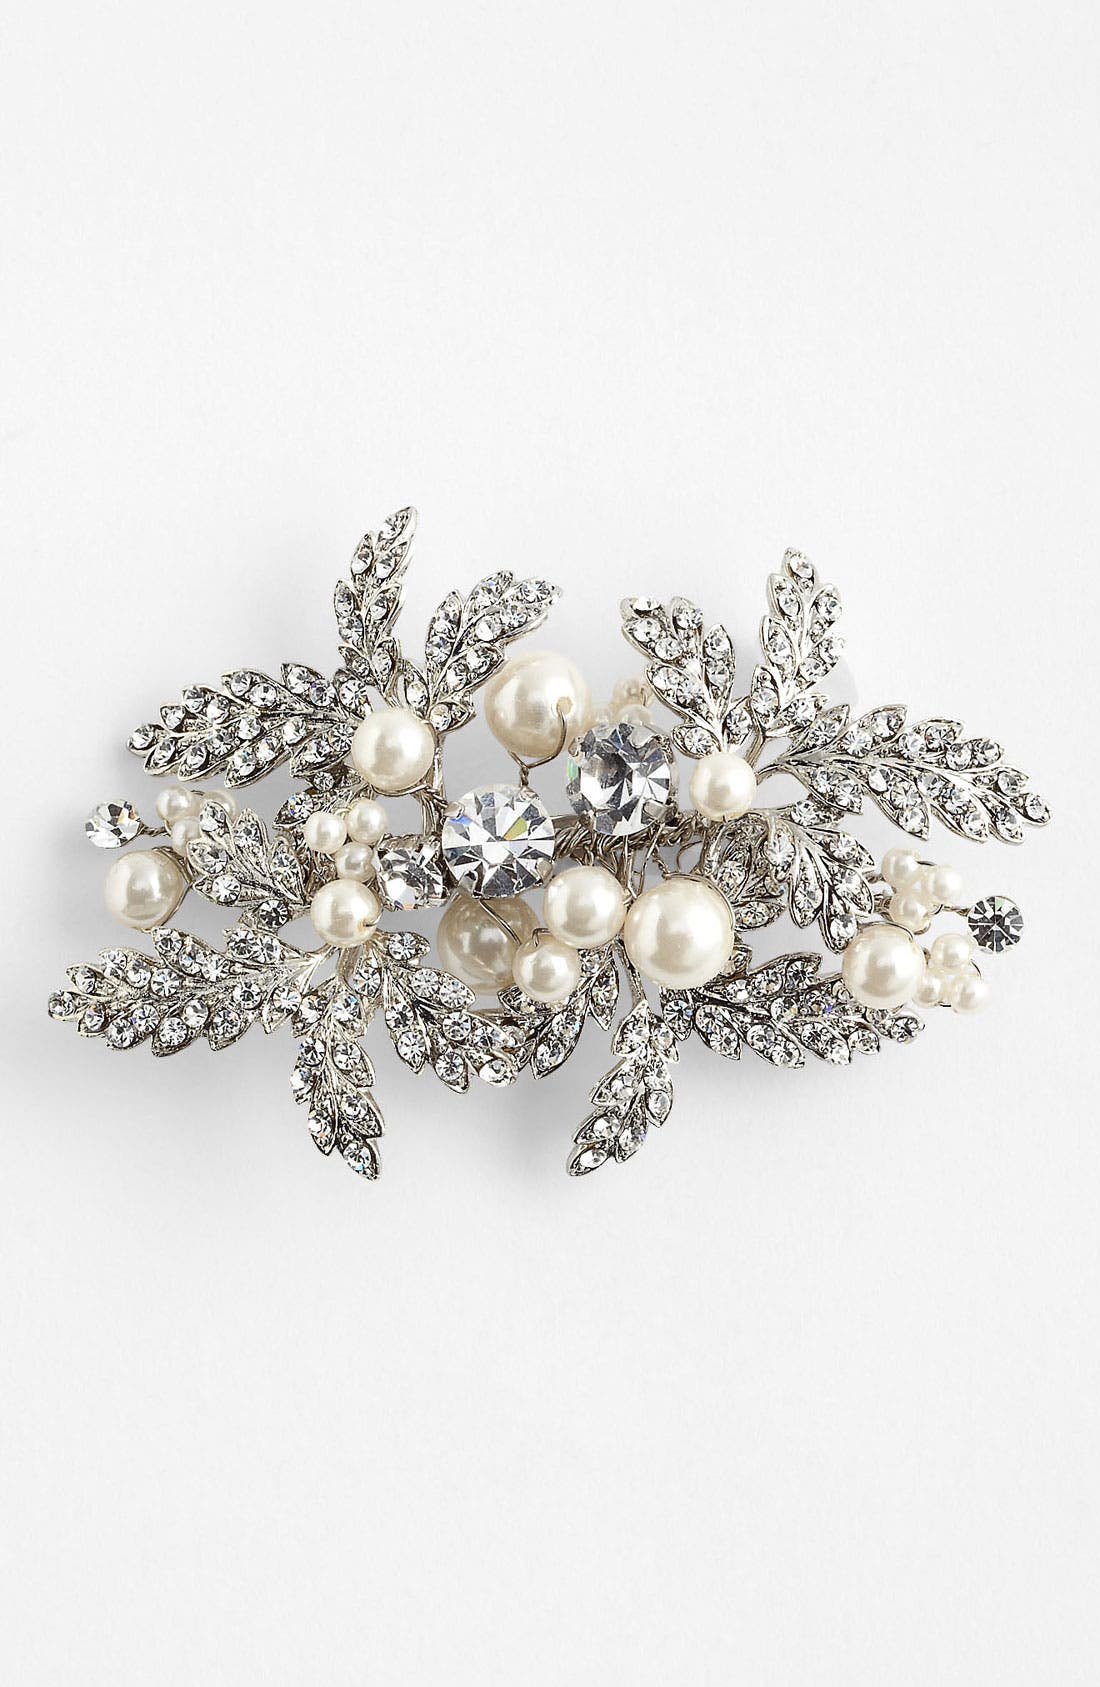 'Riley' Crystal & Faux Pearl Brooch,                             Main thumbnail 1, color,                             Silver/ Clear/ White Pearl